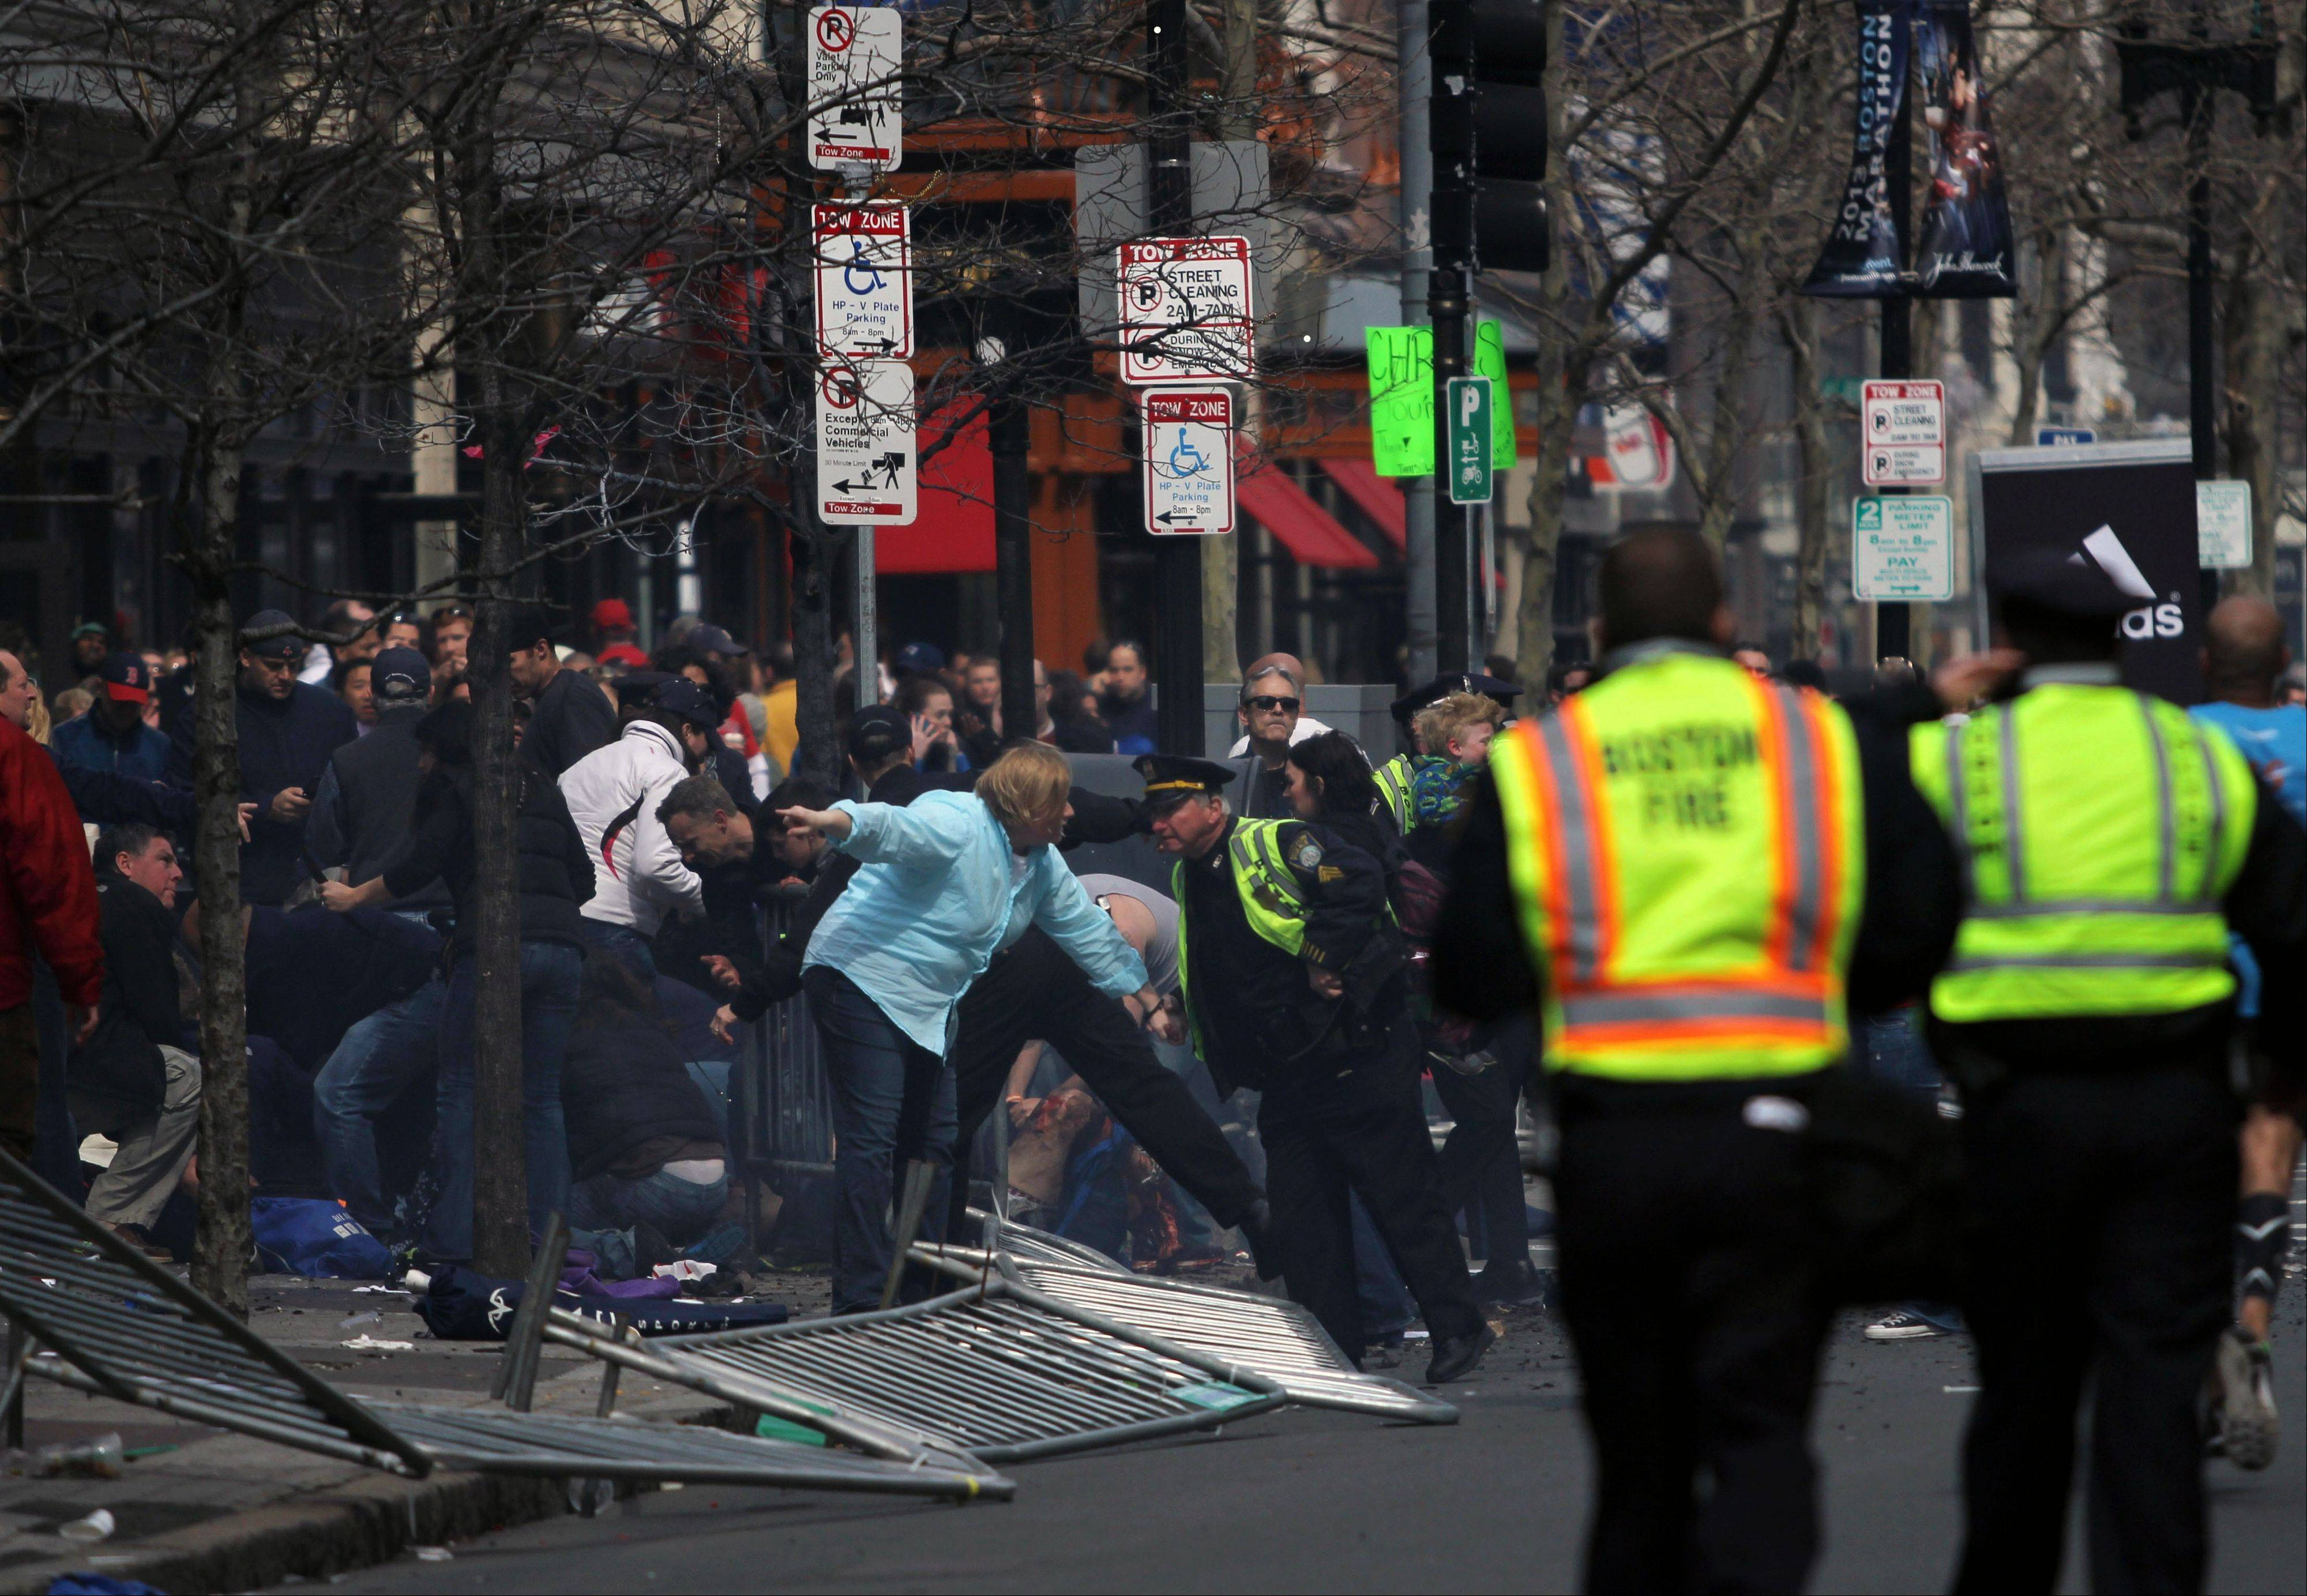 In this photo provided by The Daily Free Press and Kenshin Okubo, people react to an explosion at the 2013 Boston Marathon in Boston, Monday, April 15, 2013.